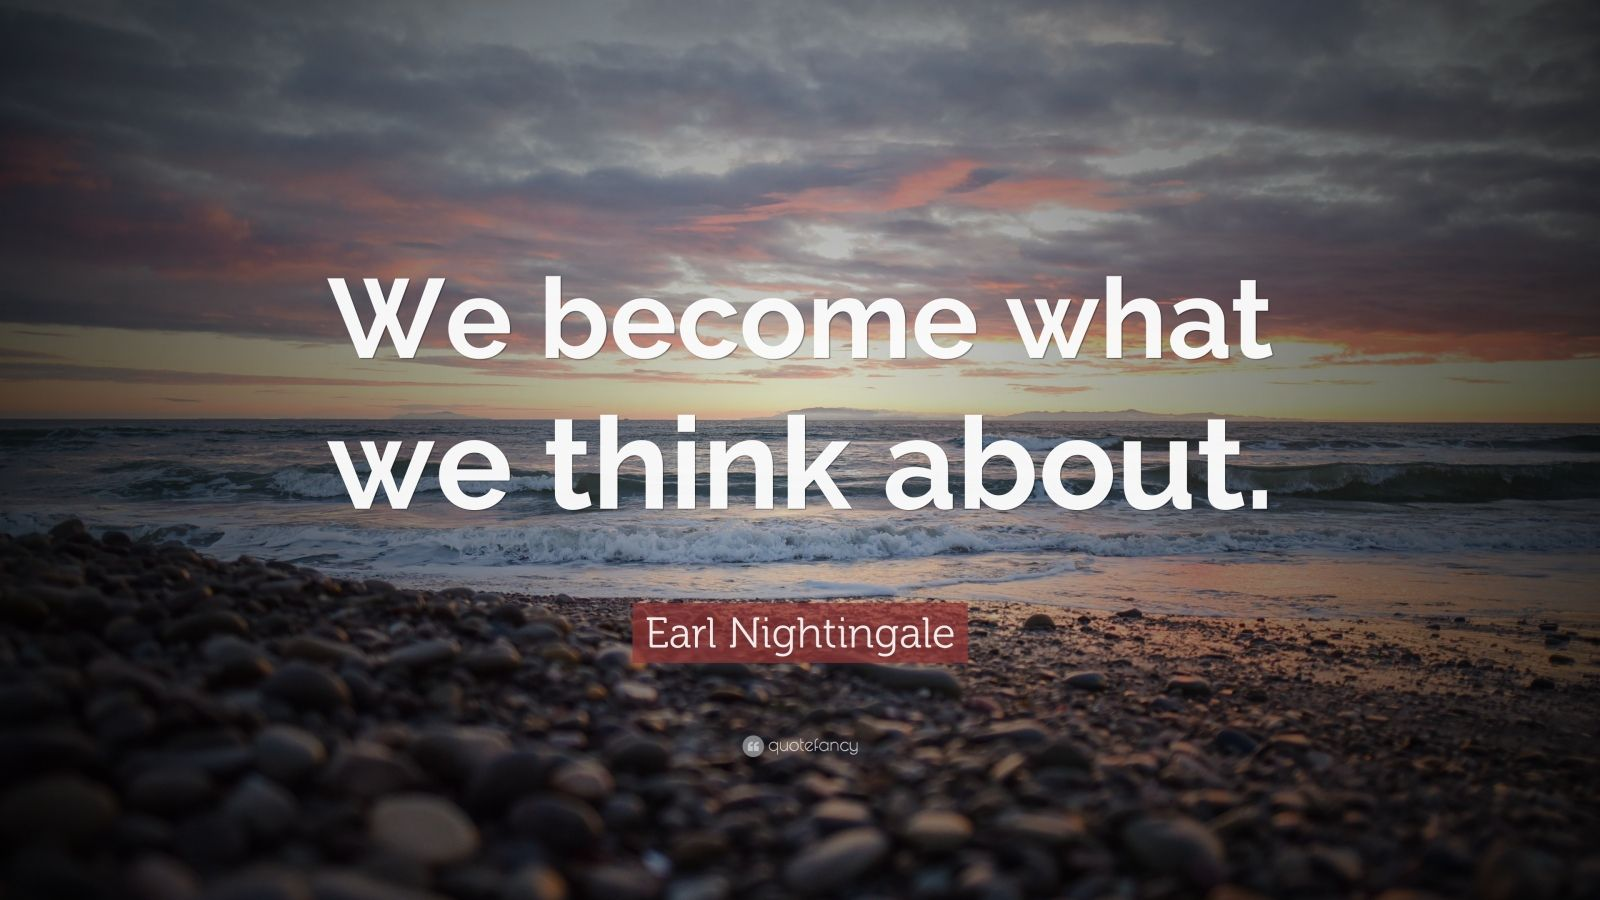 earl nightingale quote �we become what we think about